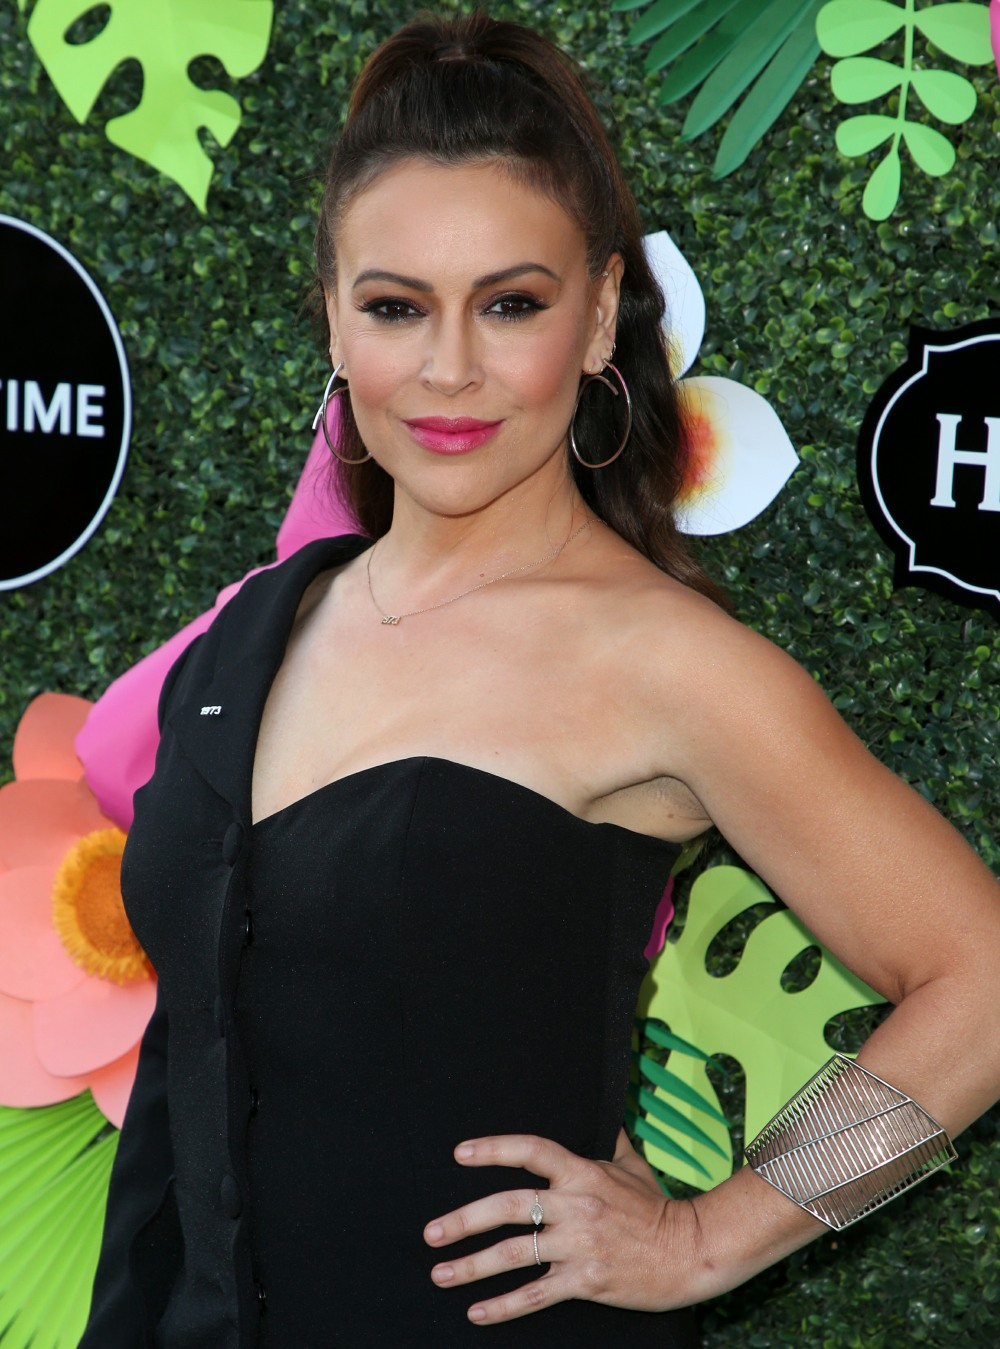 Alyssa Milano reveals that she had two abortions in 1993 when her birth control failed